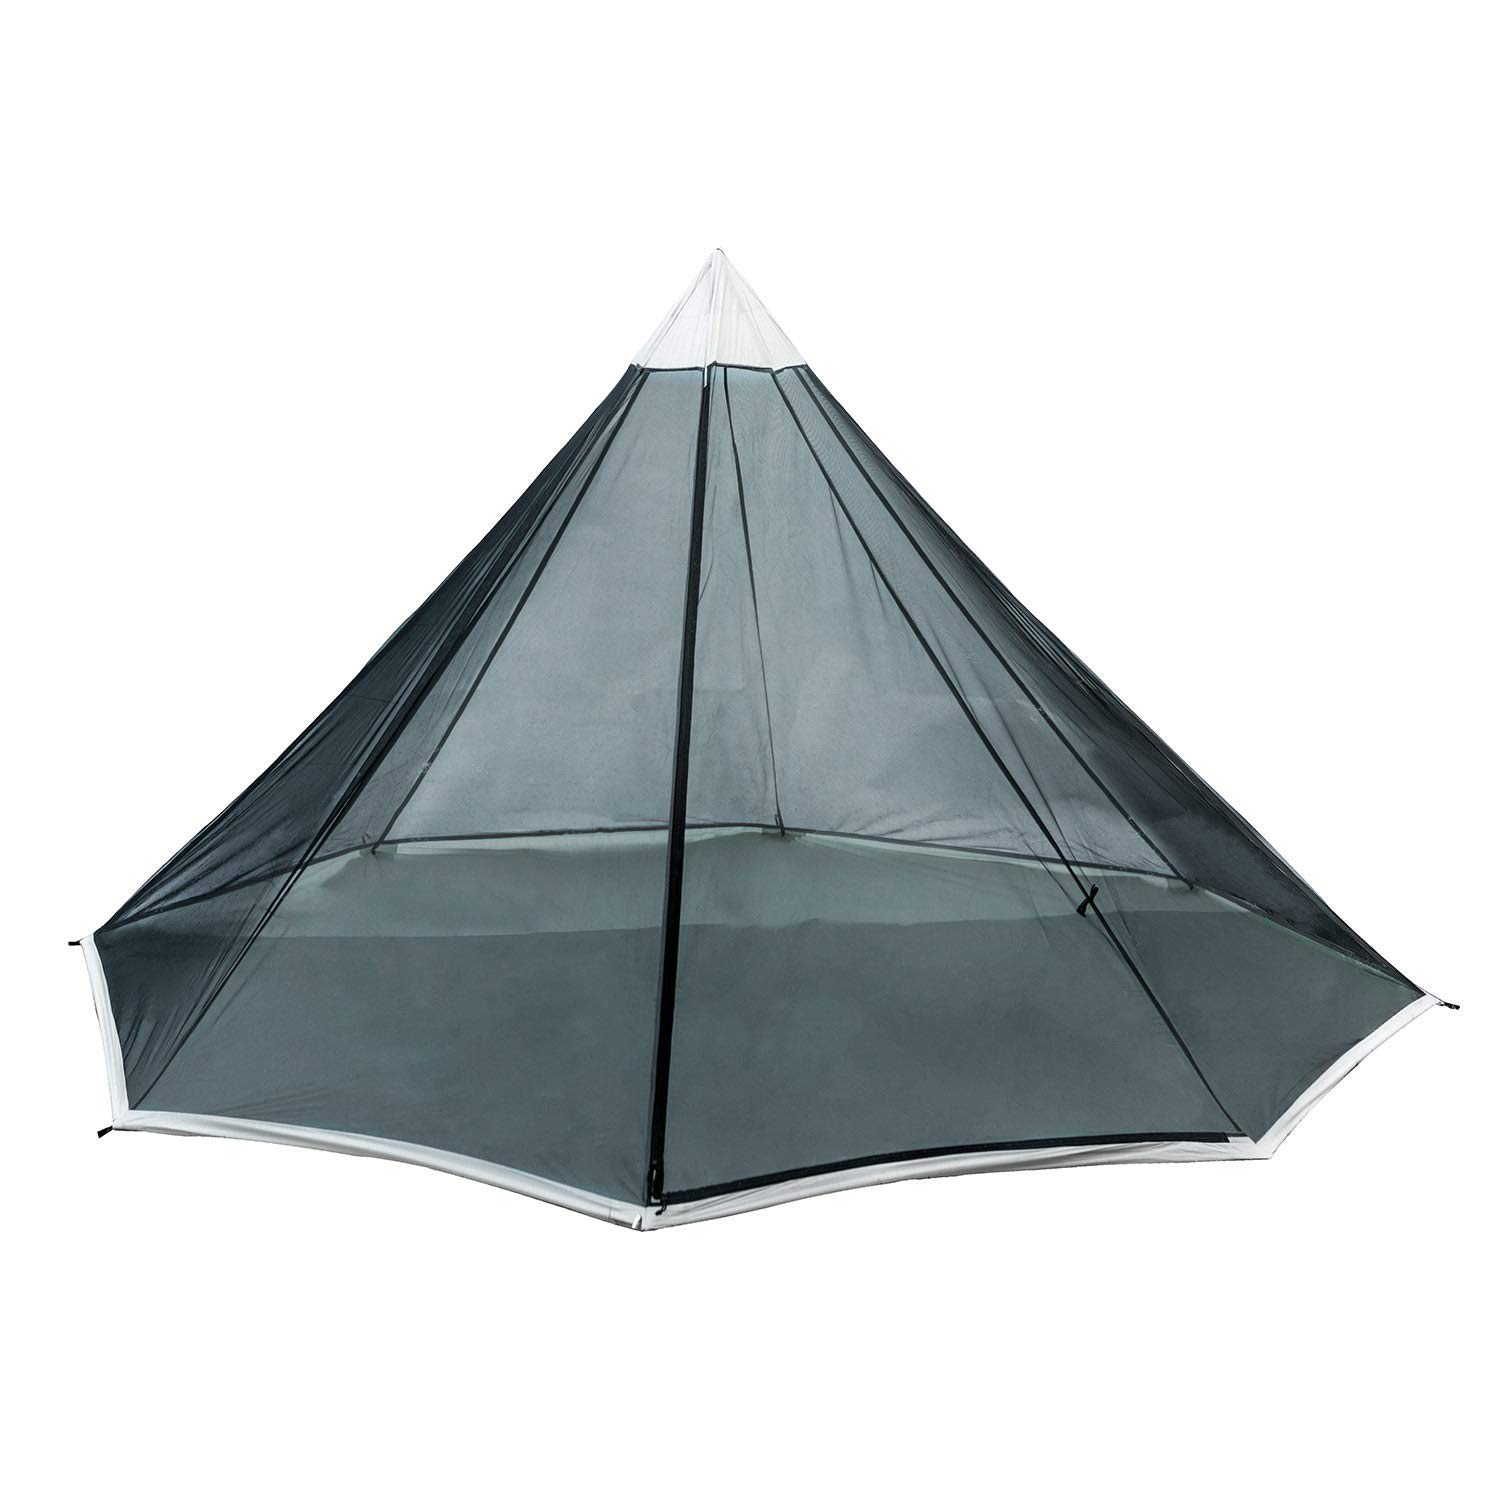 OneTigris Black Orca Howlingtop Double Teepee Mesh Tent, 34.7oz, No Pole by OneTigris